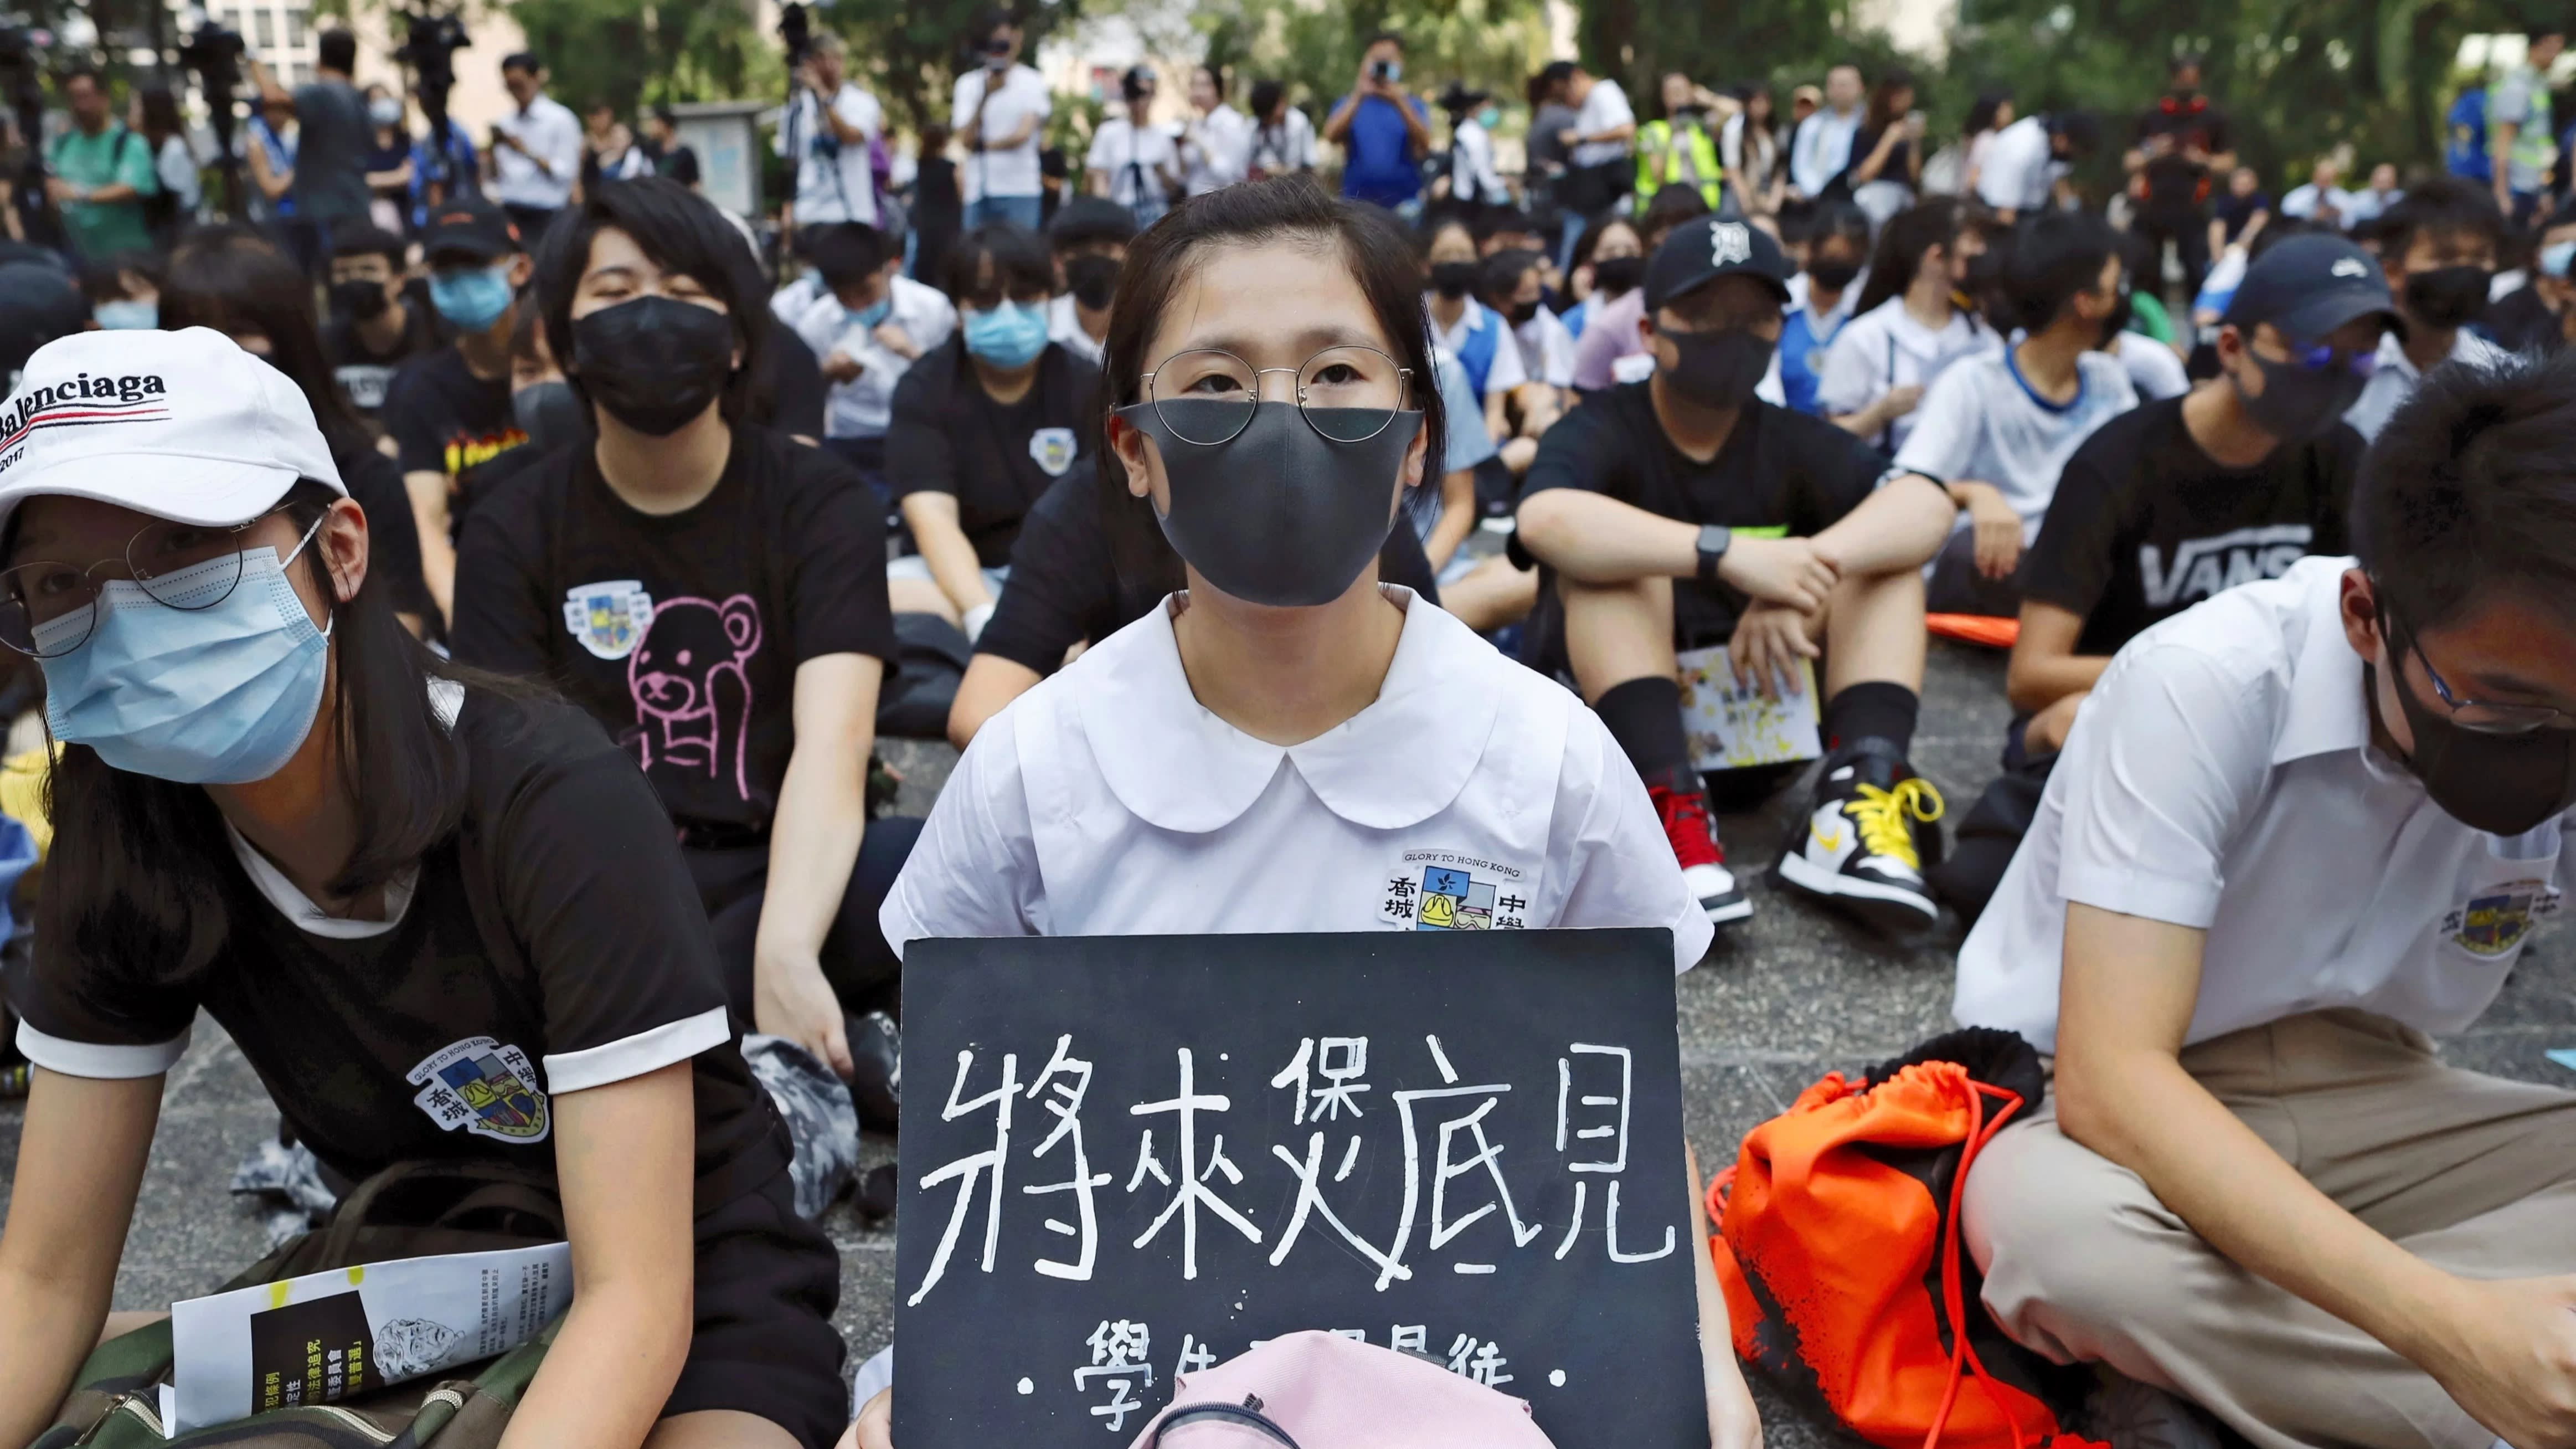 As National Day nears, protests in Hong Kong continue